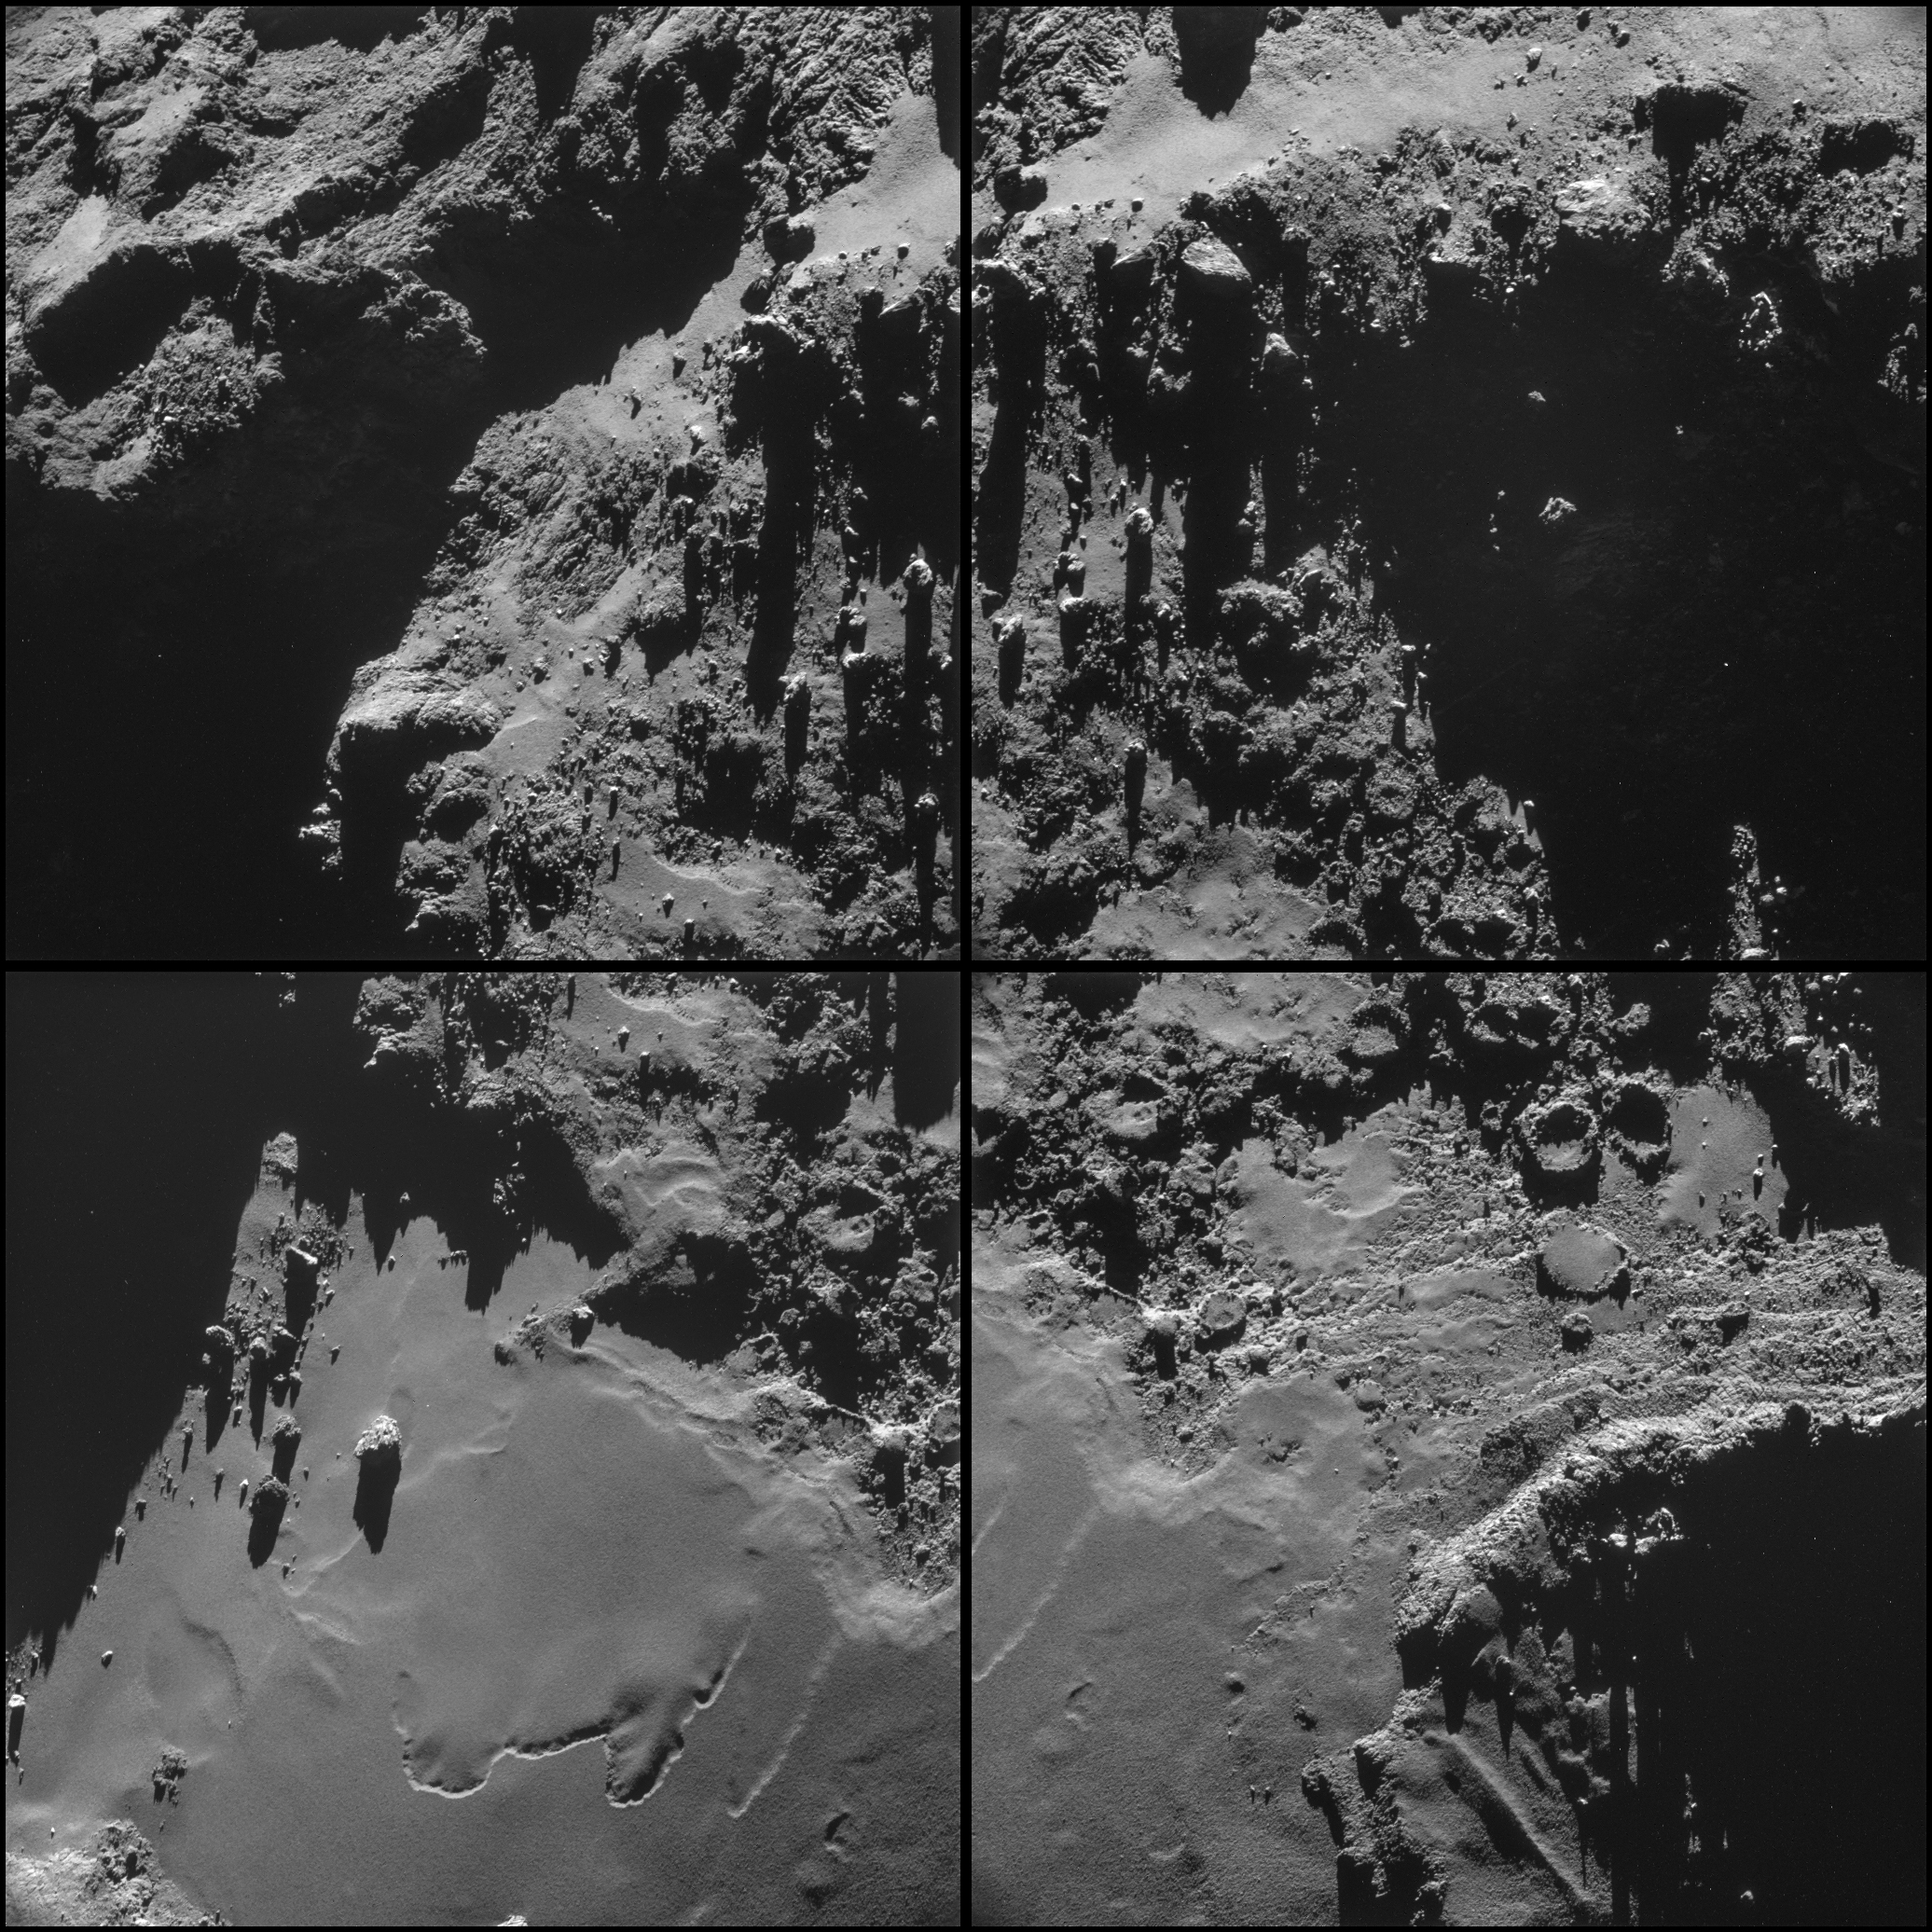 CometWatch – Cheops' neighbours – Rosetta – ESA's comet chaser